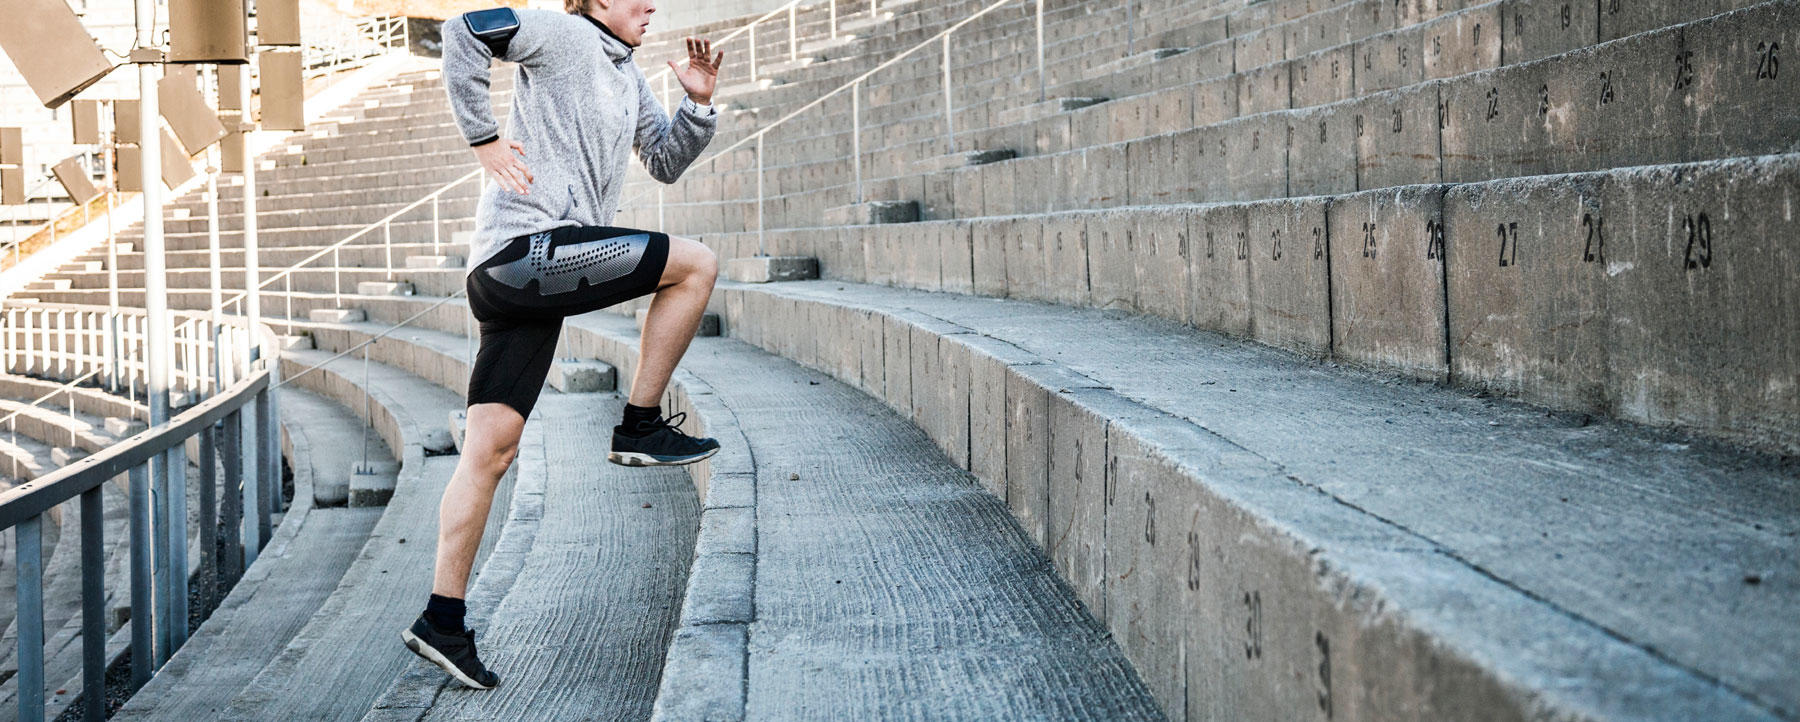 Young man exercising in early morning running on steps